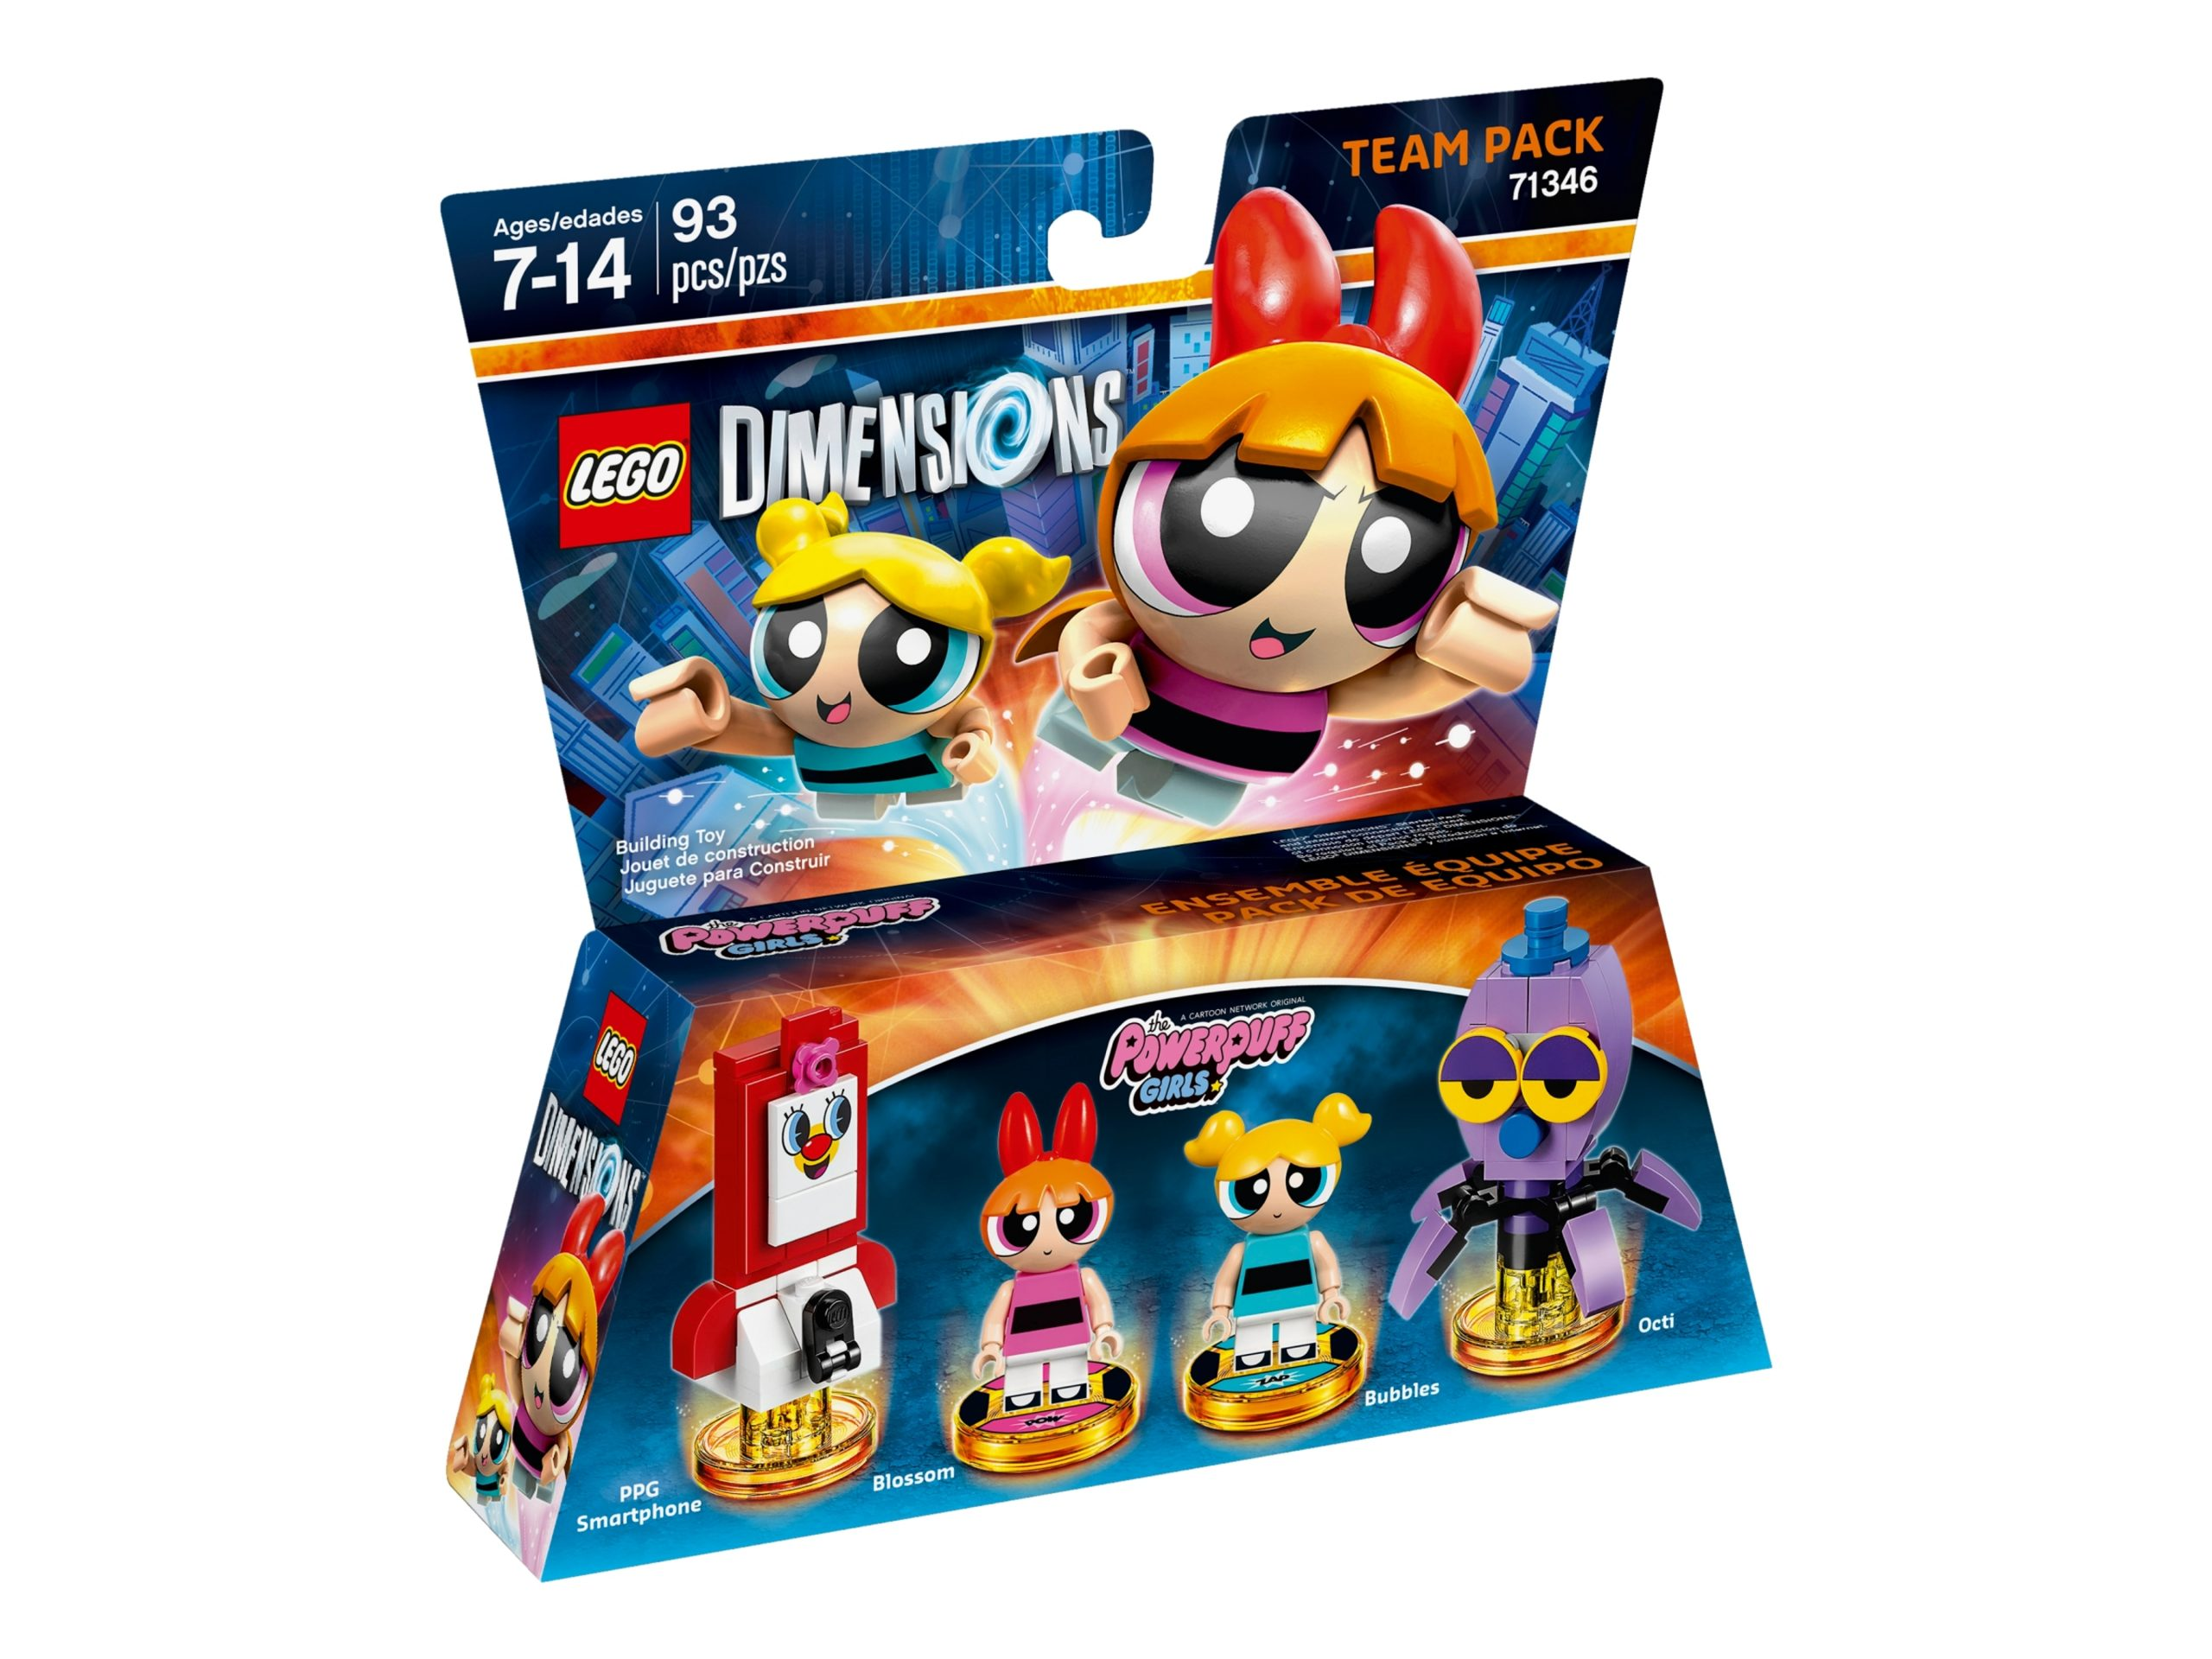 lego 71346 the powerpuff girls team pack scaled